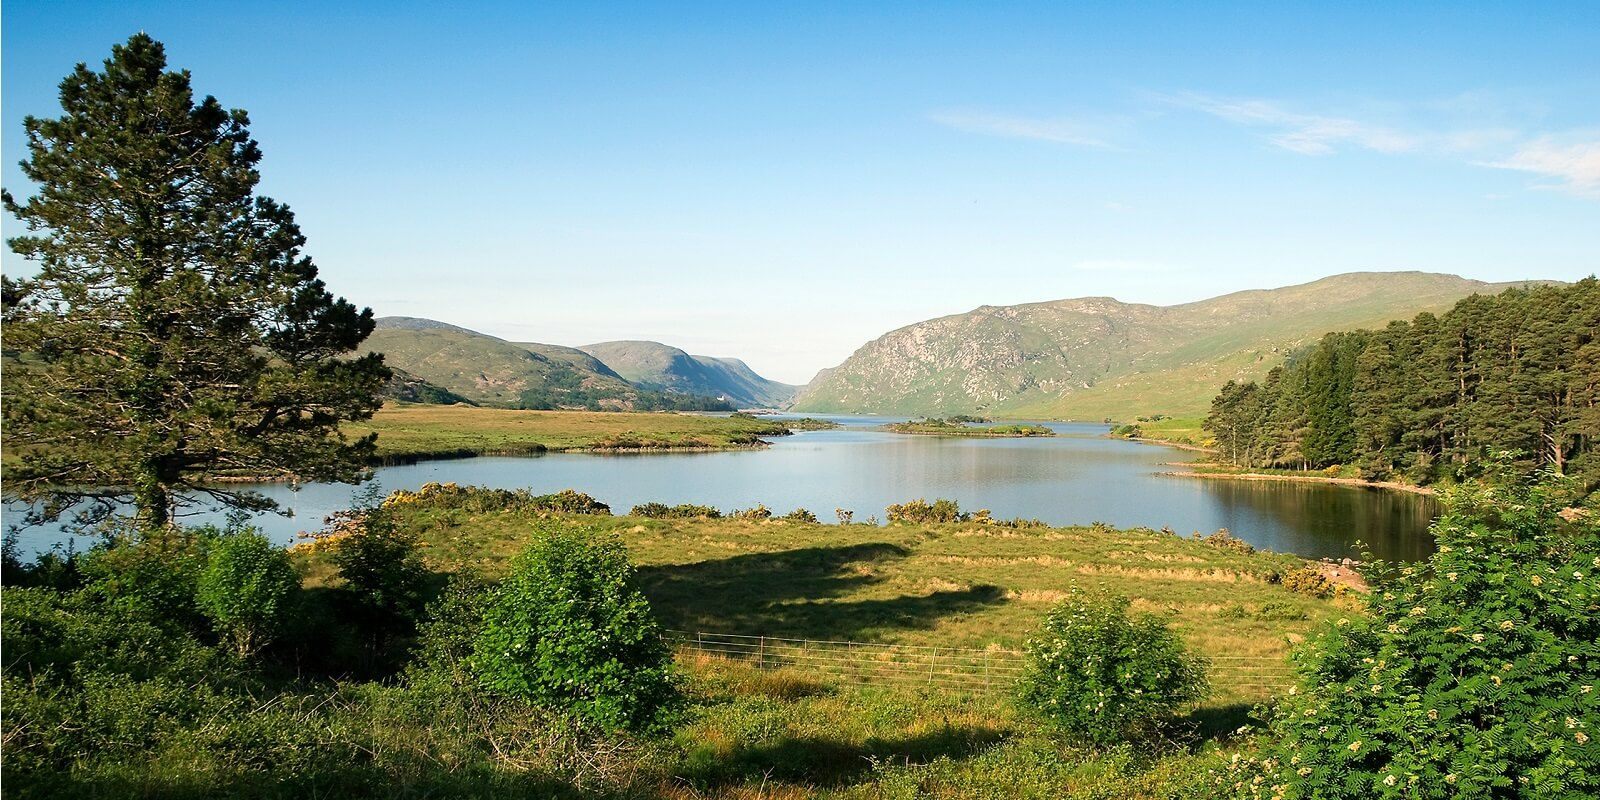 Glenveagh National Park, Co. Donegal